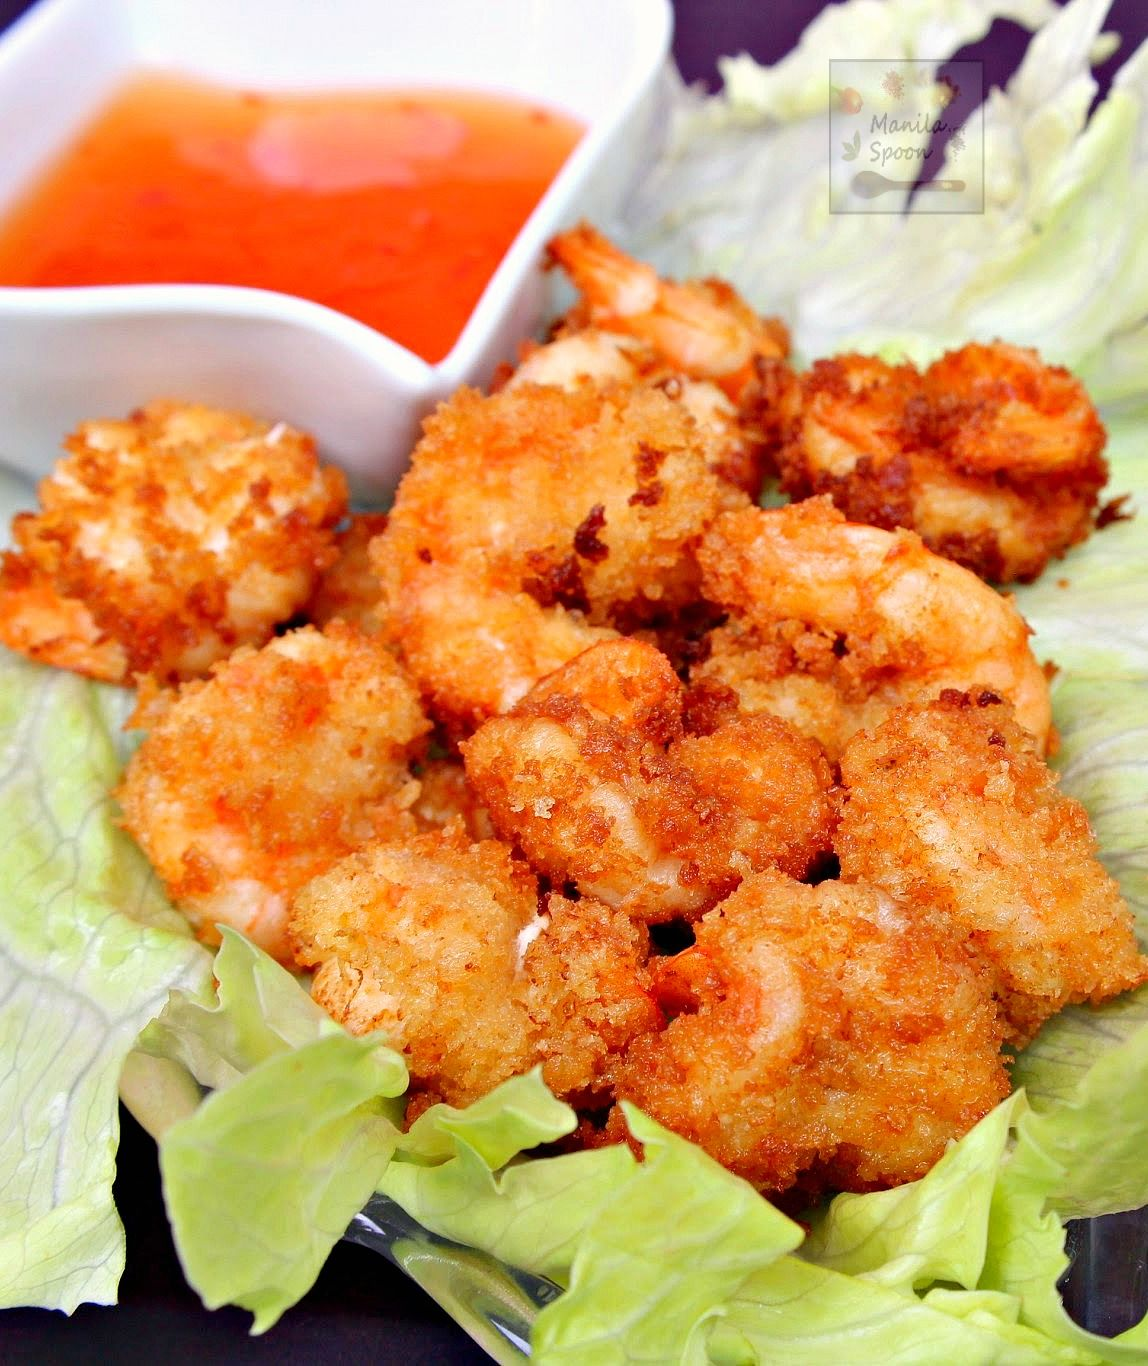 Camaron Rebosado is a citrus-marinated battered shrimp served with a sweet sour sauce and is the Filipino version of tempura. Cruncy-licious and flavorful, it's a great appetizer and a sure crowd-pleaser!